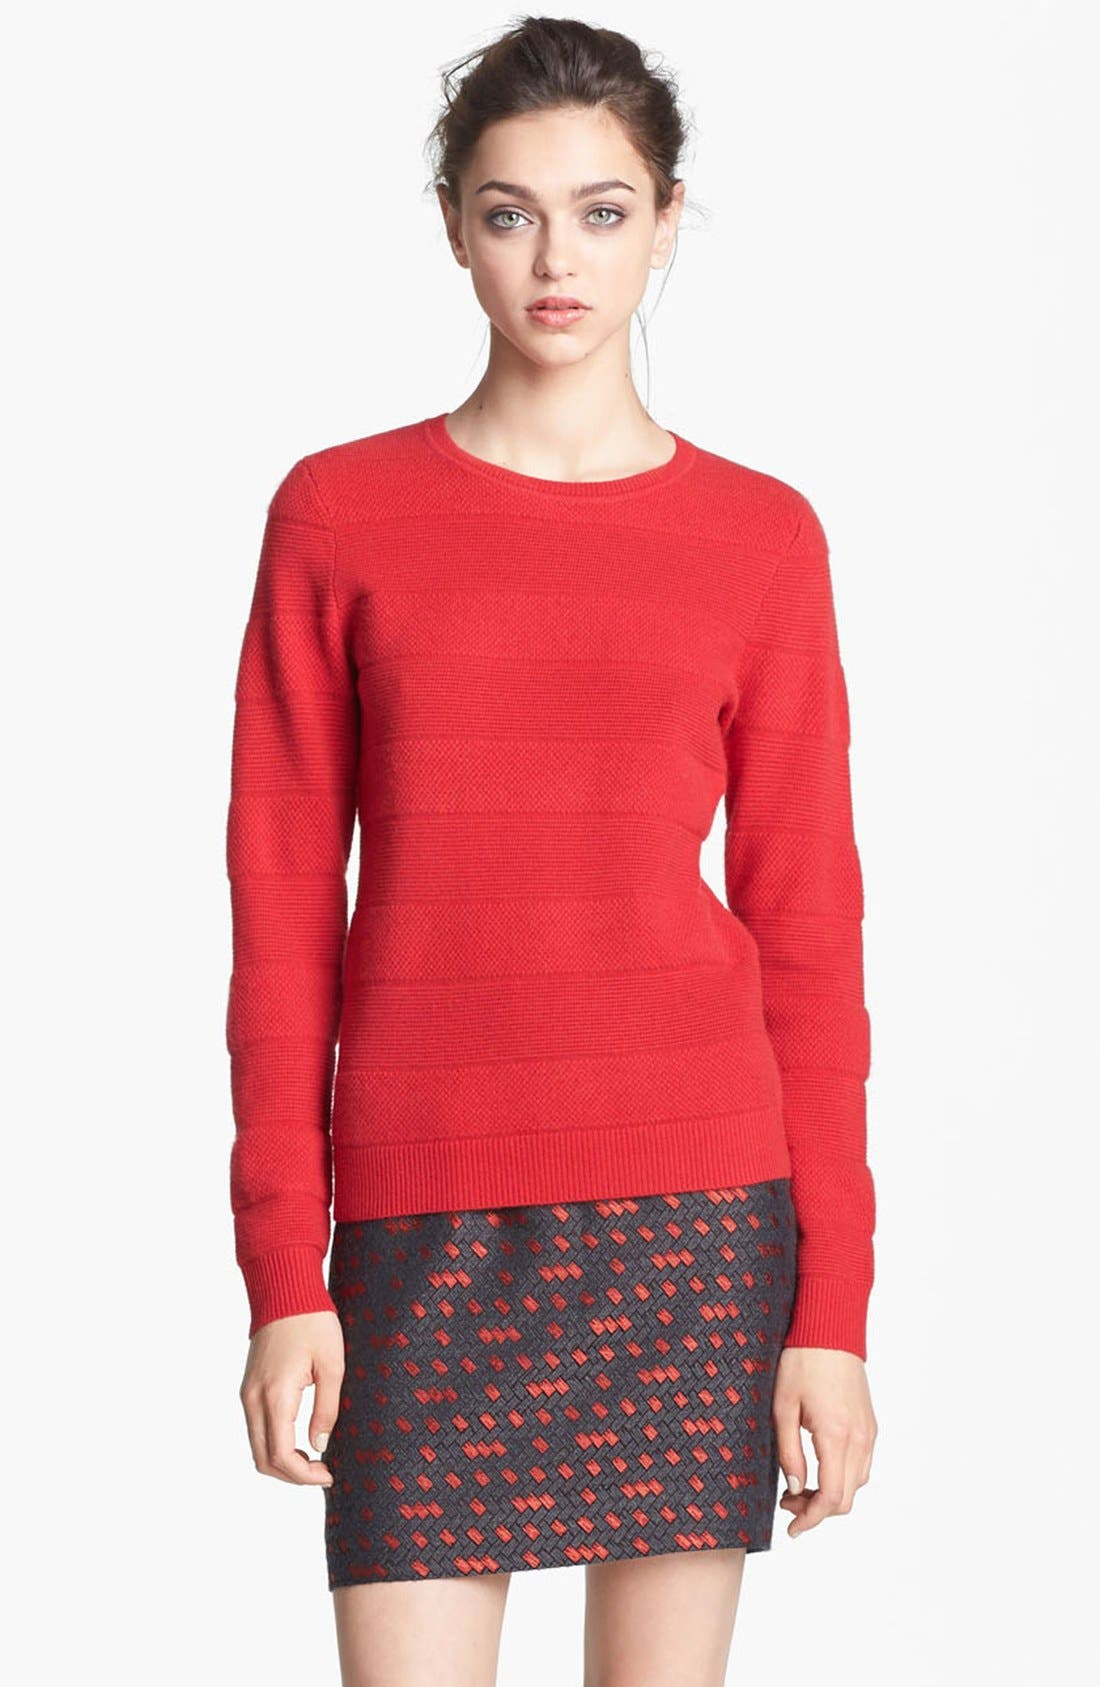 Main Image - Miss Wu 'Polimero' Textured Stripe Cashmere Sweater (Nordstrom Exclusive)